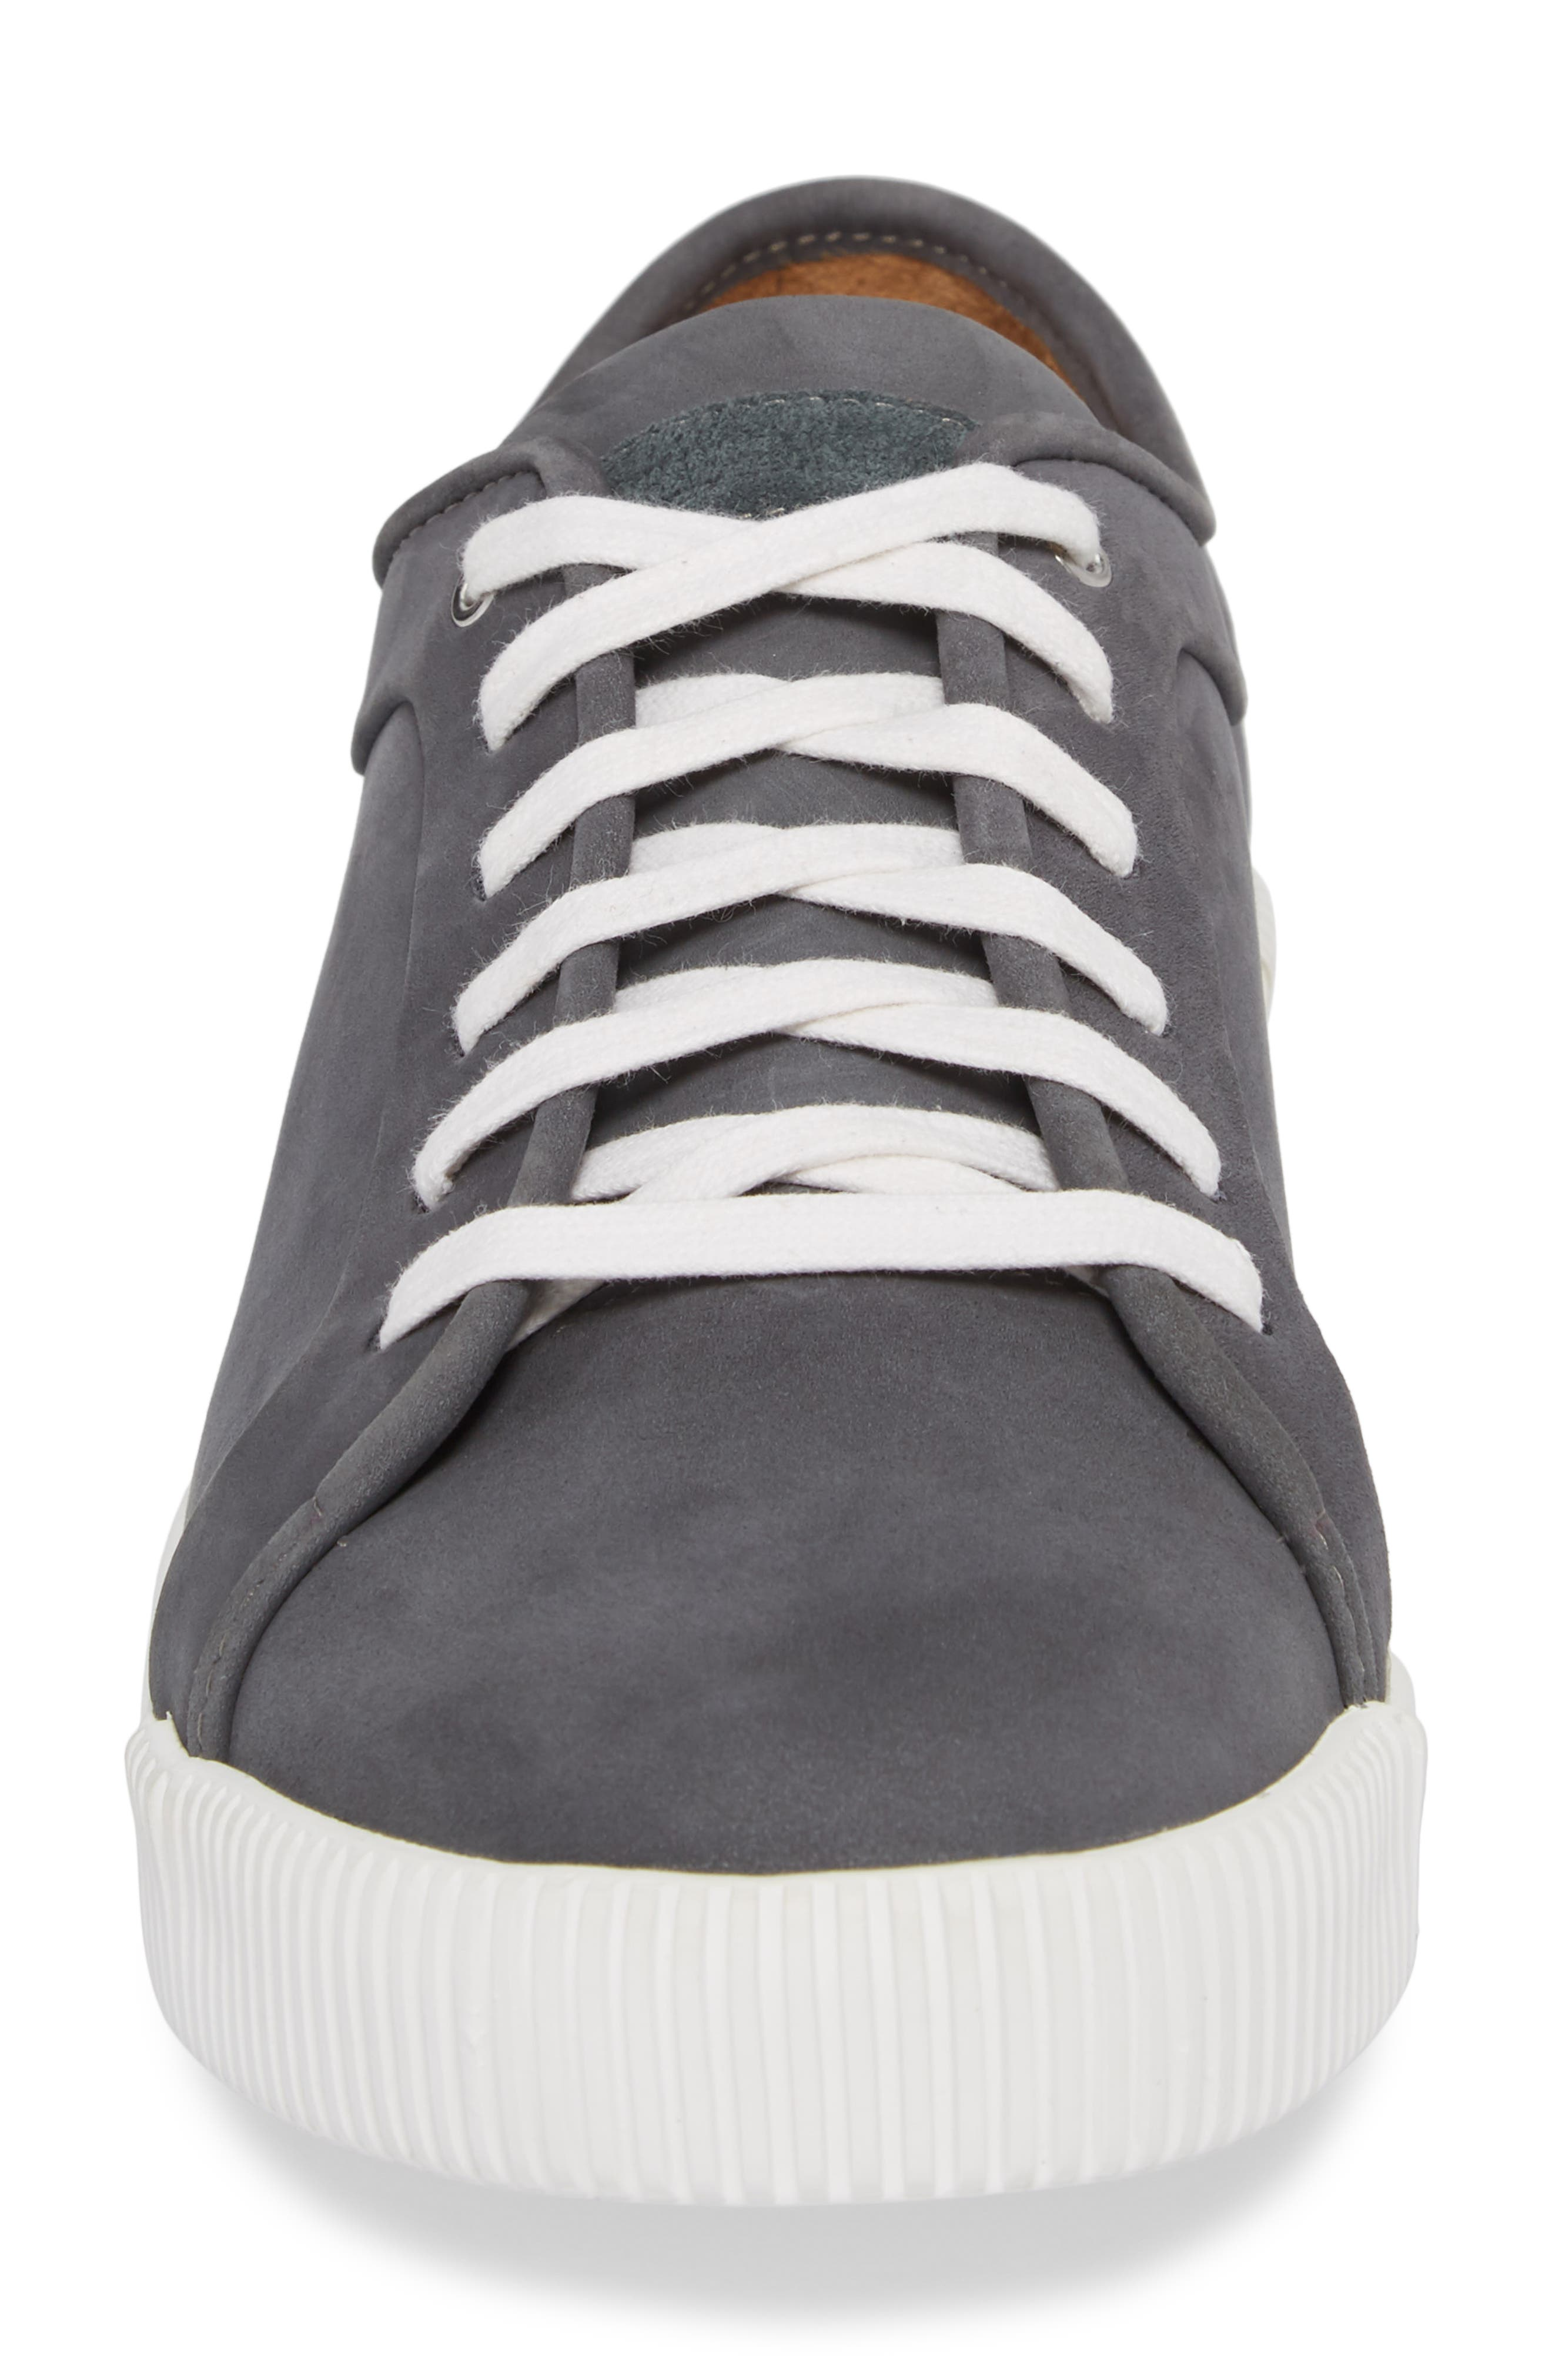 Lyons Low Top Sneaker,                             Alternate thumbnail 4, color,                             020